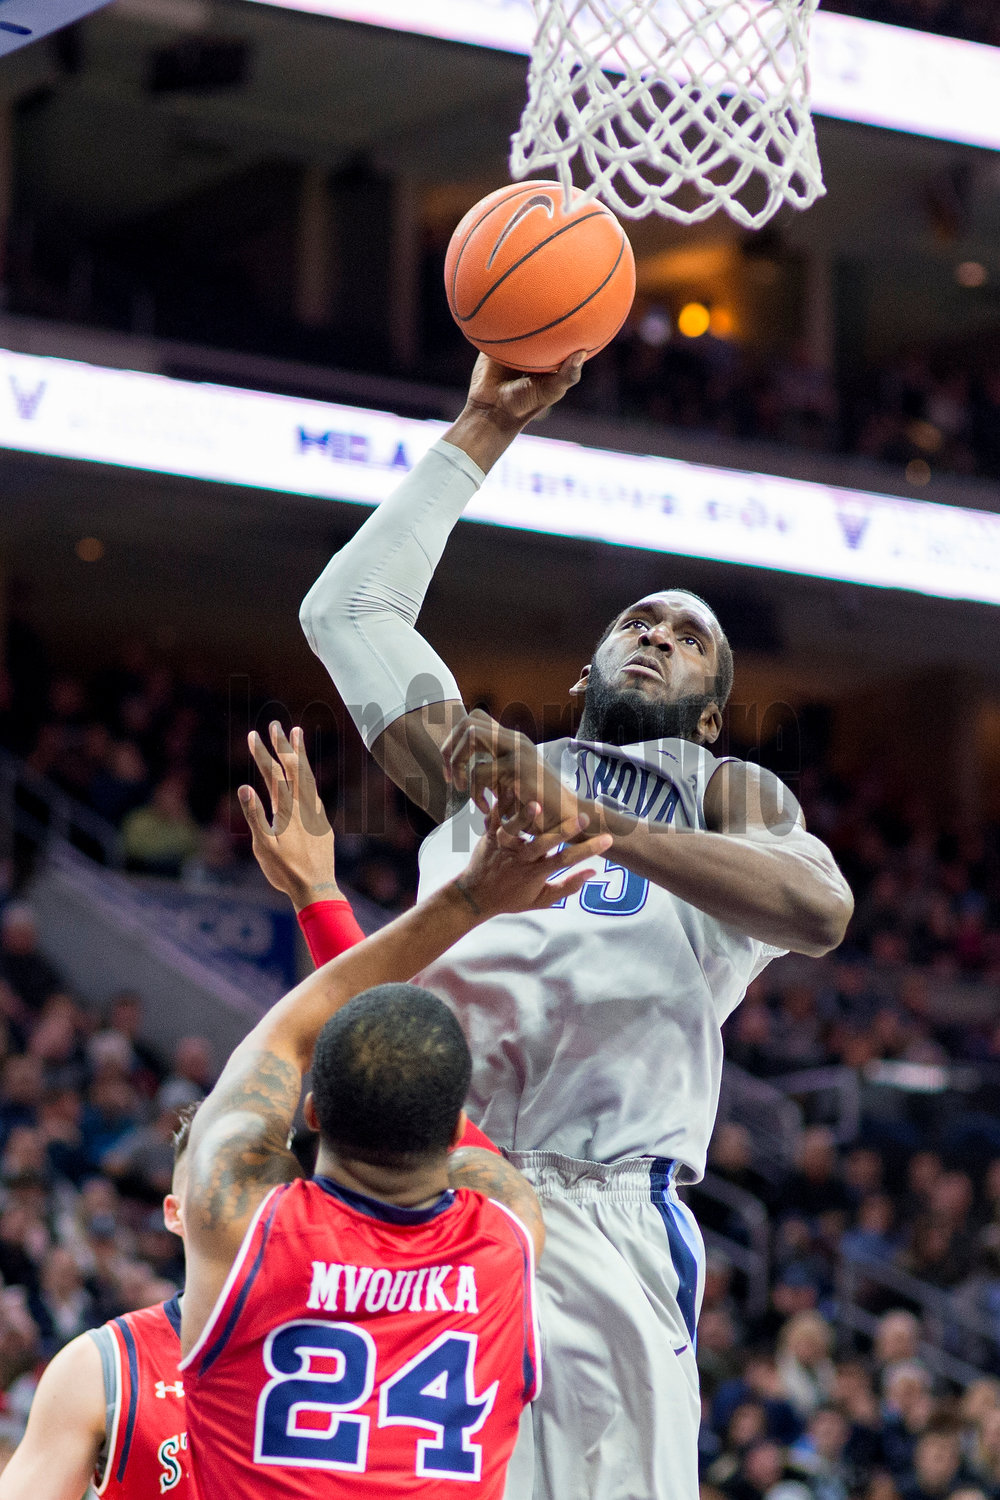 13 February 2016: Villanova Wildcats forward Daniel Ochefu (23) on the way up for his slam dunk during the NCAA basketball game between the St. John's Red Storm and the Villanova Wildcats played at the Wells Fargo Center in Philadelphia, PA. (Photo by Gavin Baker/Icon Sportswire)